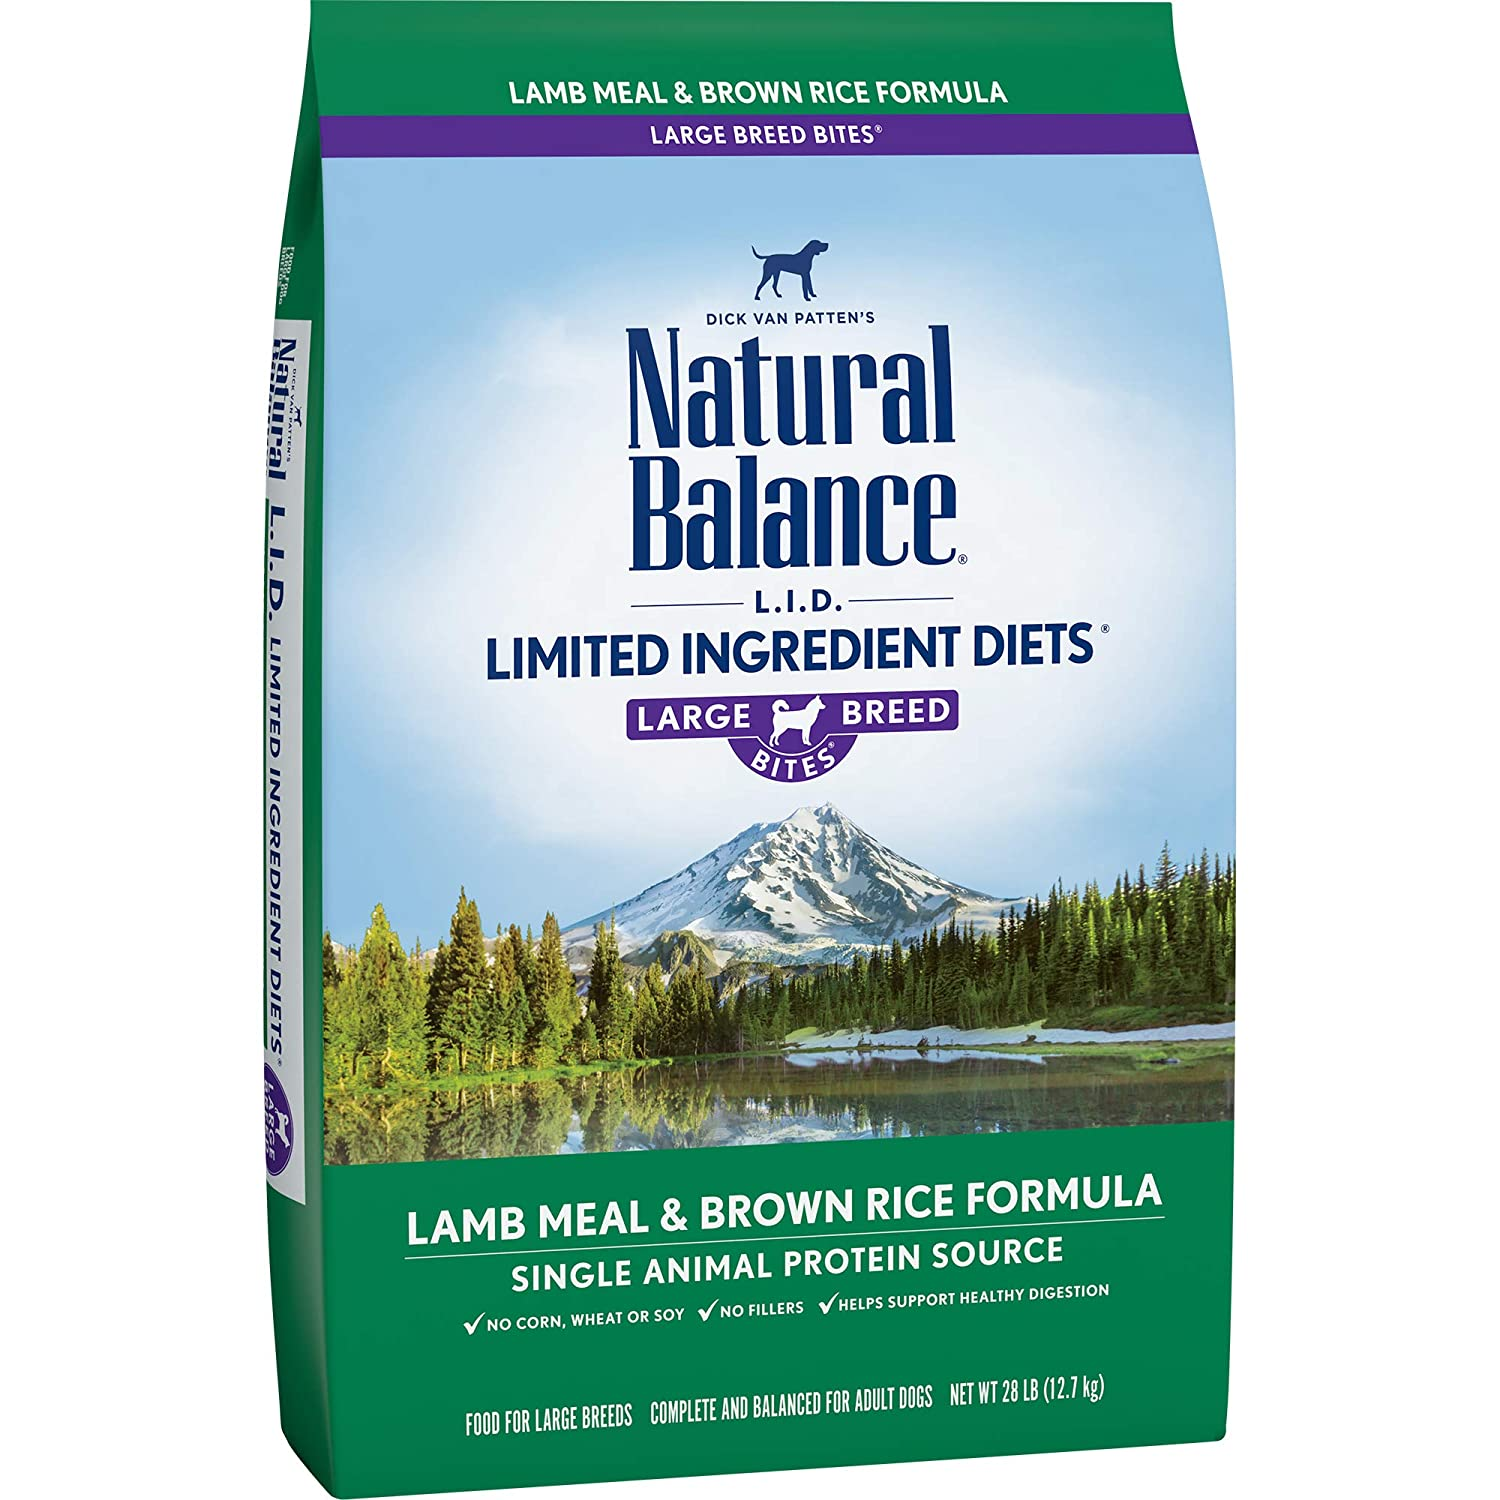 Natural Balance Limited Ingredient Diets Dry Dog Food - Large Breed Bites L.I.D. Lamb Meal & Brown Rice